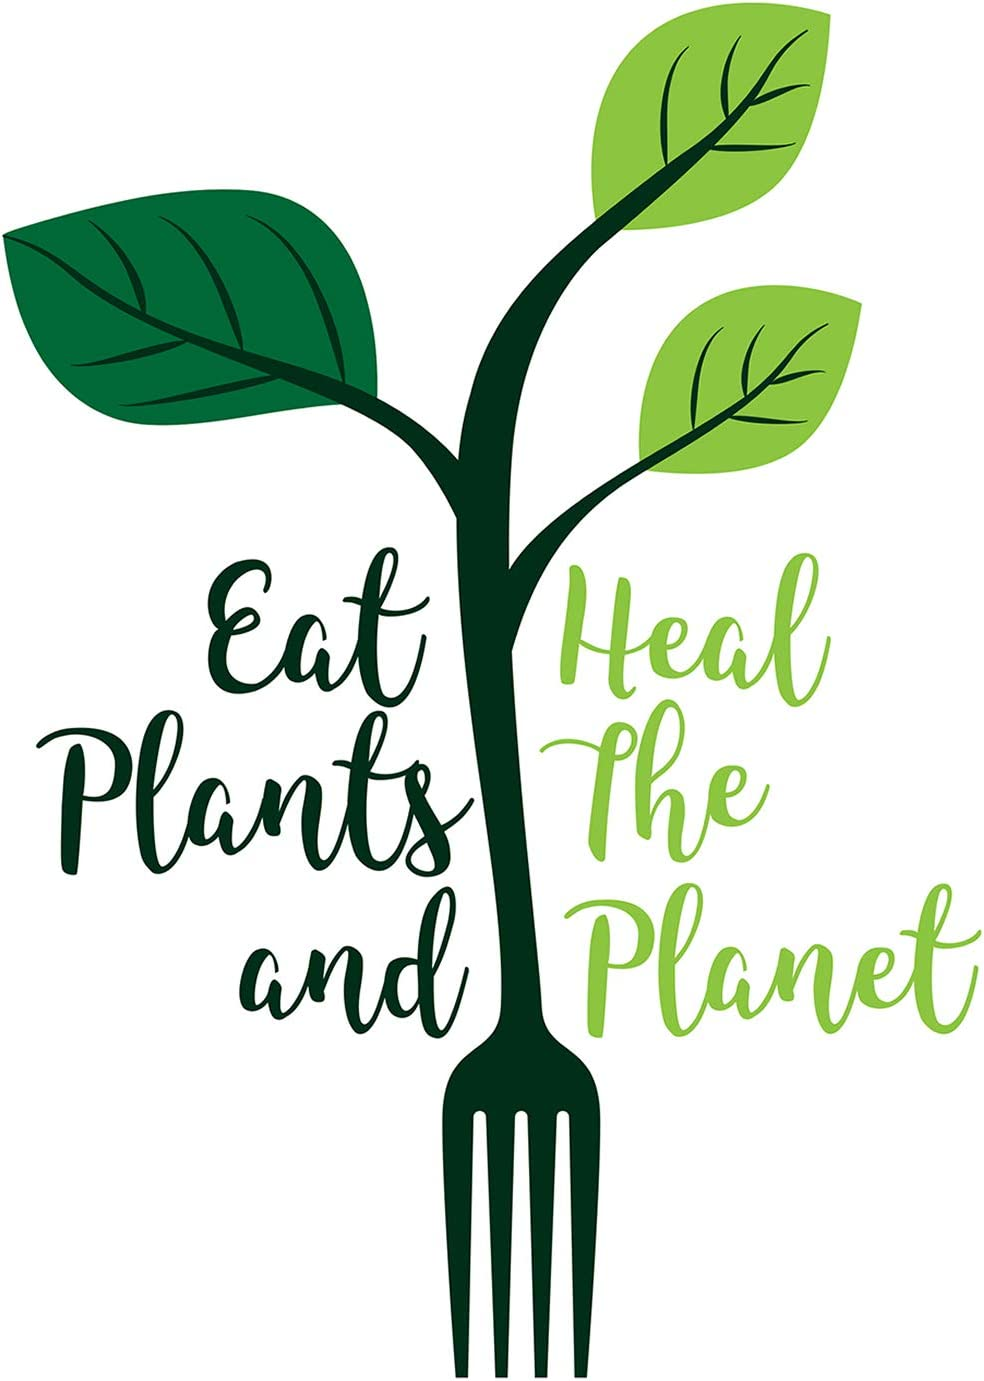 Eat Plants and Heal The Planet - 8x10 Unframed Vegan and Vegetarian Pun Wall Decor Art Print on a White Background - Great Funny Gift for Vegetarians, Vegans and Plant-Based Eaters